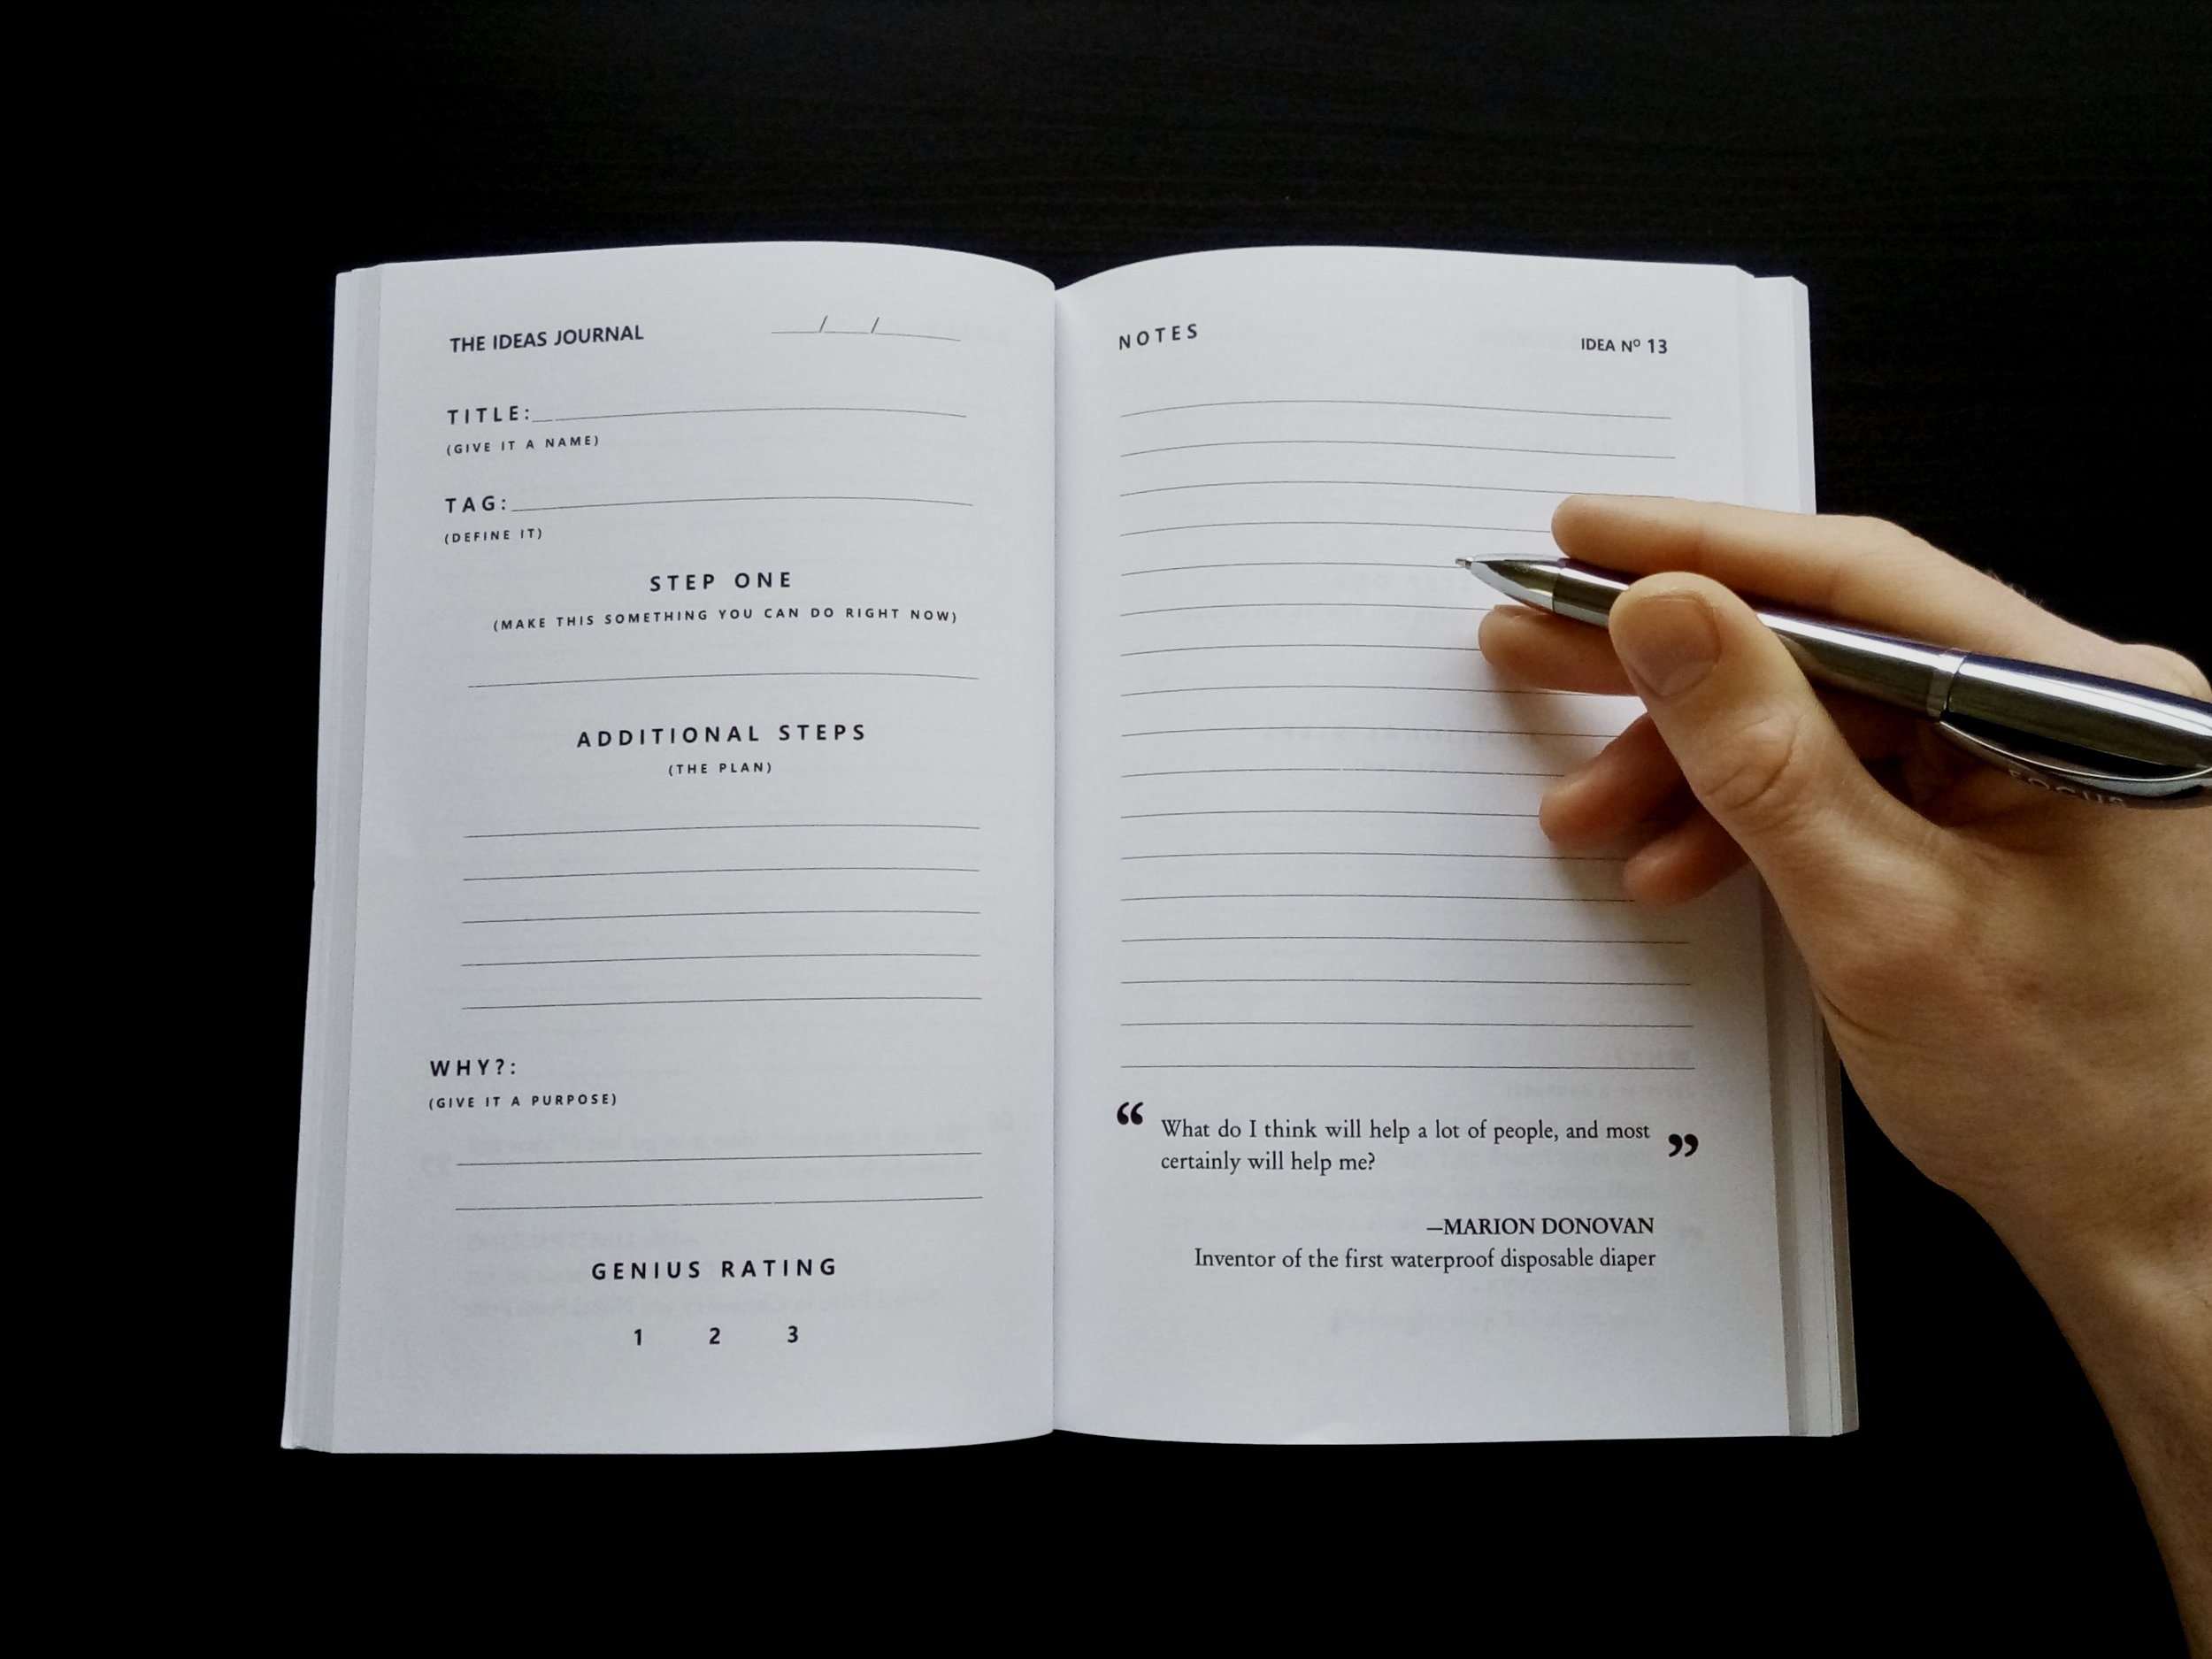 The Ideas Journal is a Tool for Discovery - Make a daily habit of writing down ideas and it's only a matter of time before you come up with the idea that changes everything. Writing down ideas every day trains you to see the opportunities all around you.